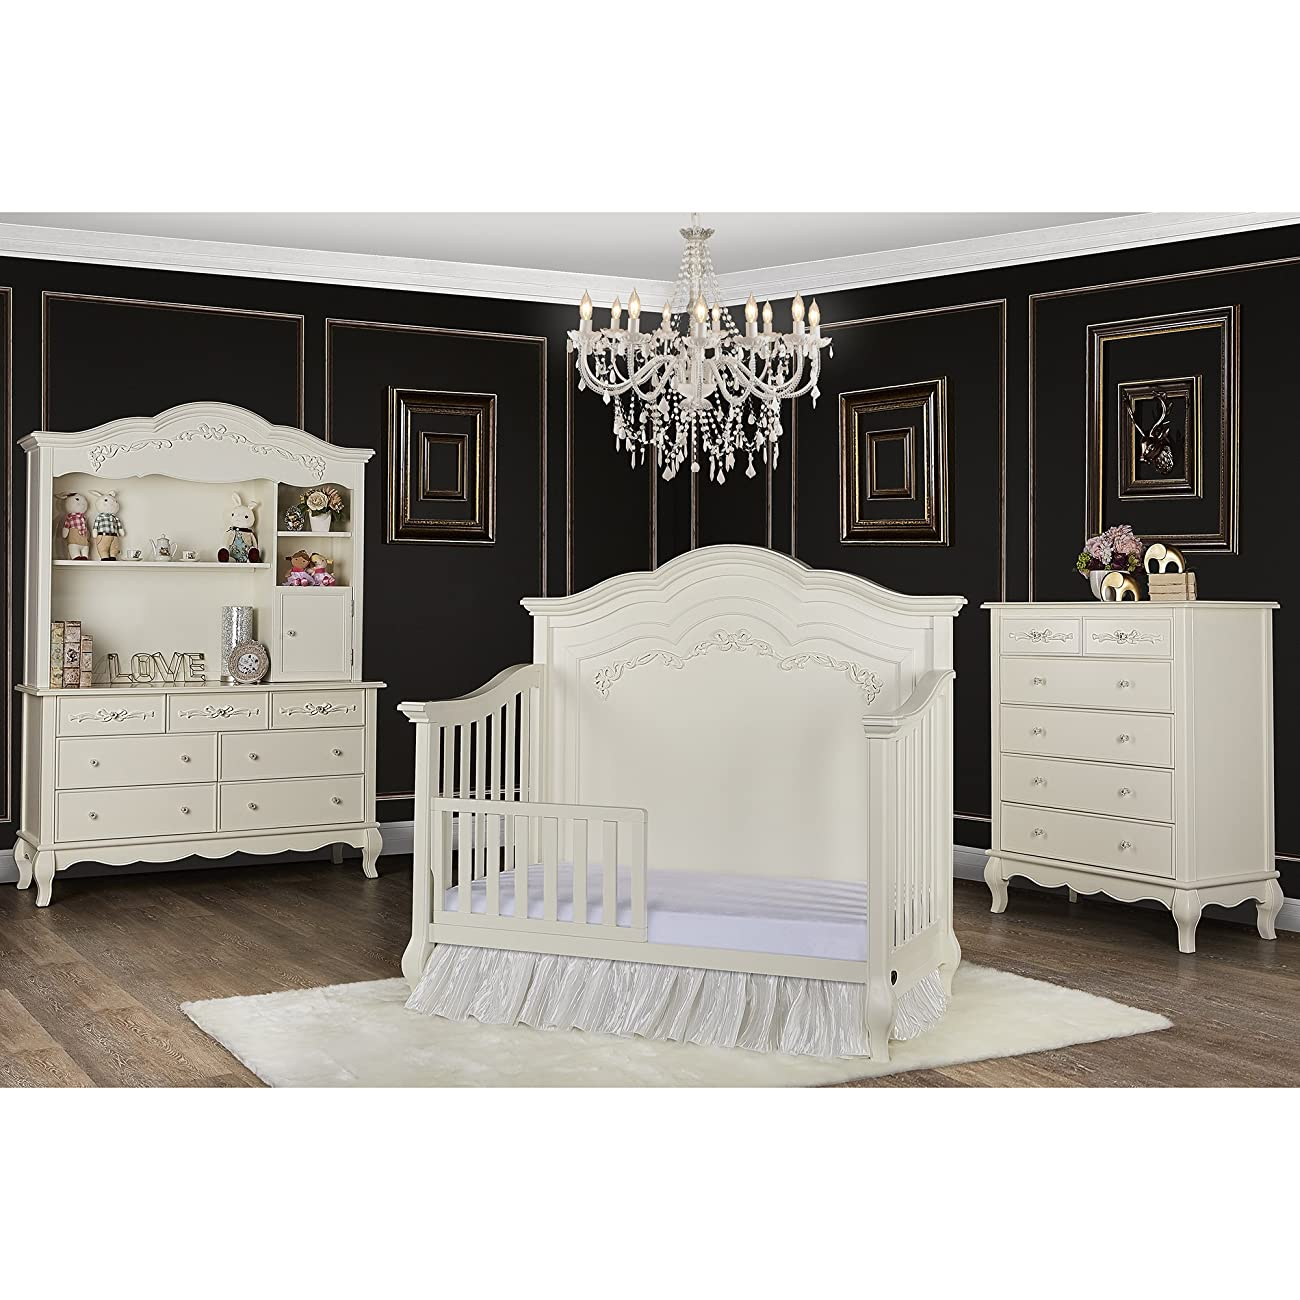 Evolur Aurora 5-in-1 Convertible Crib, Ivory Lace 3